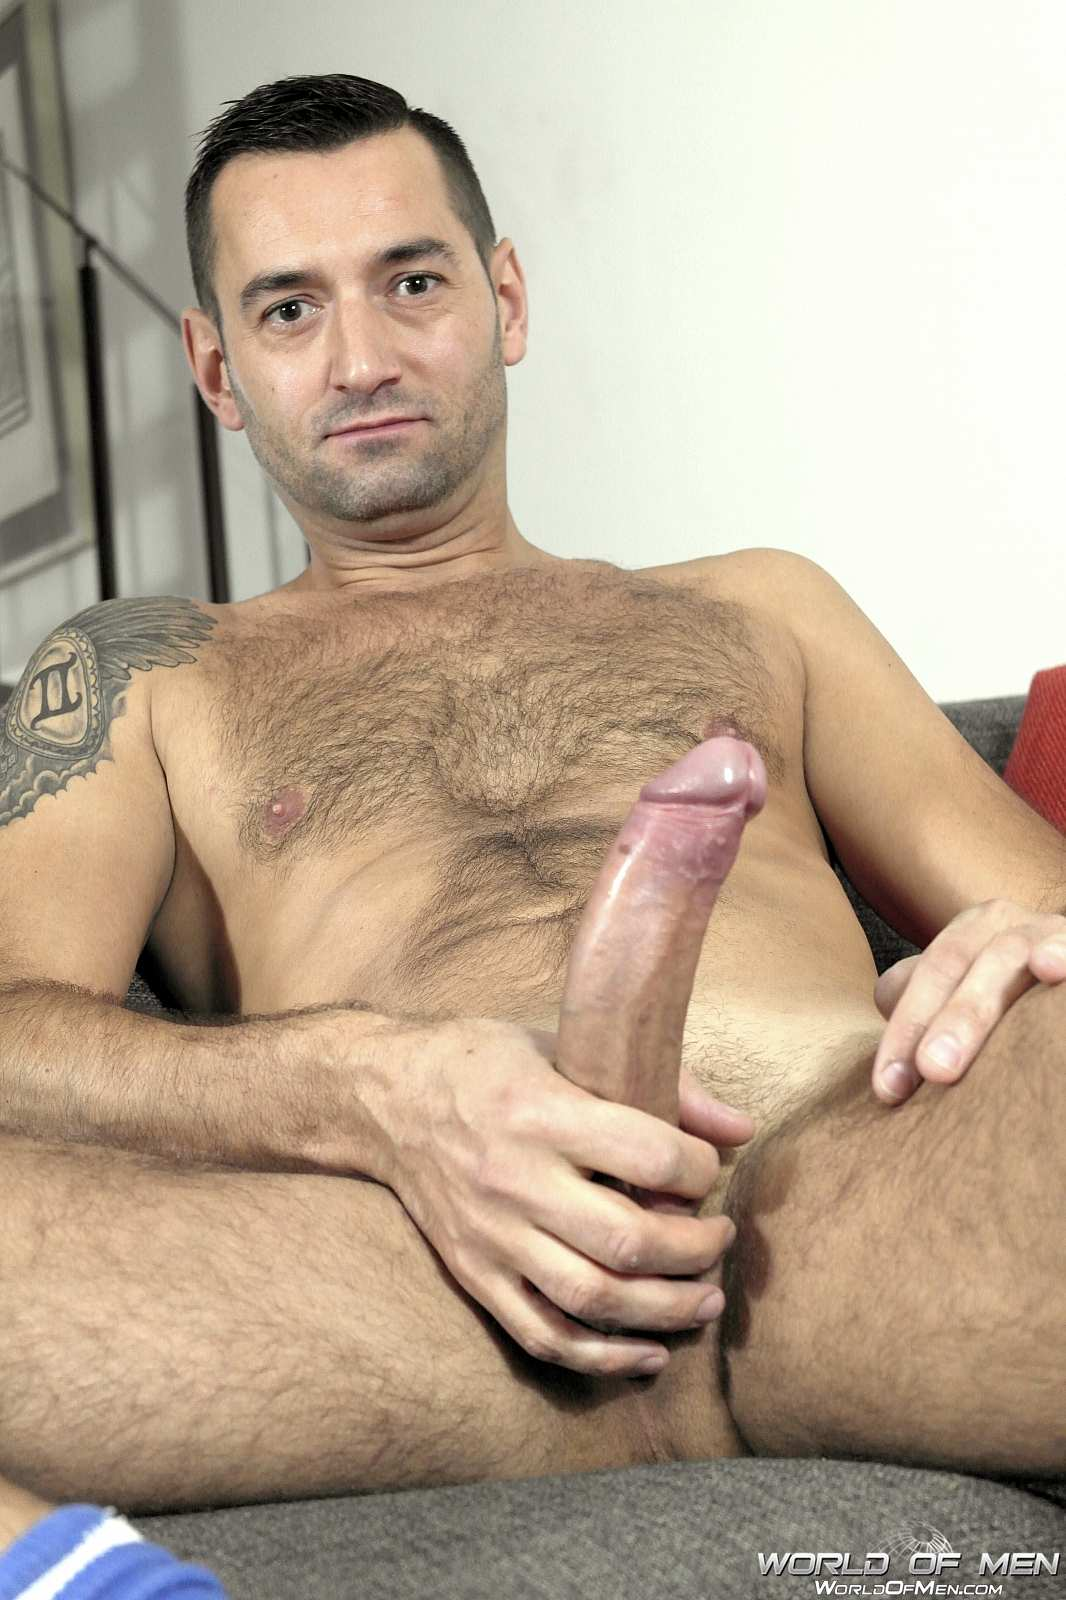 World-Of-Men-Chris-ADam-Big-Uncut-Cock-Jerk-Off-Masturbation-Amateur-Gay-Porn-11 Hairy Sexy Stud Fingers His Ass And Plays With His Huge Uncut Cock